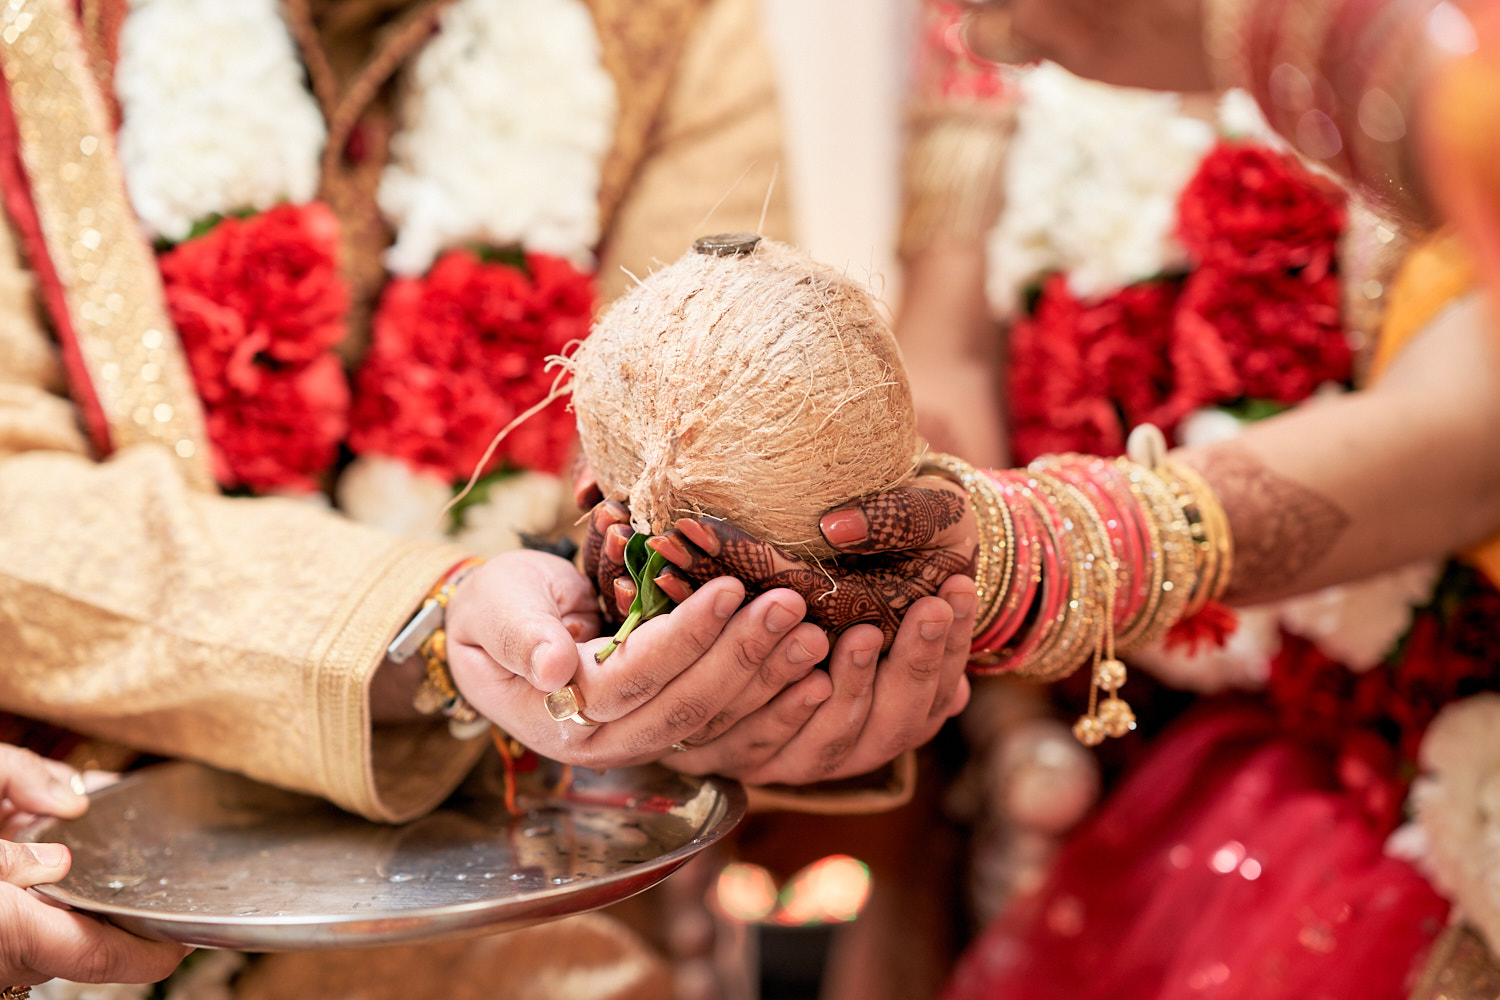 The coconut ceremony during Indian wedding.